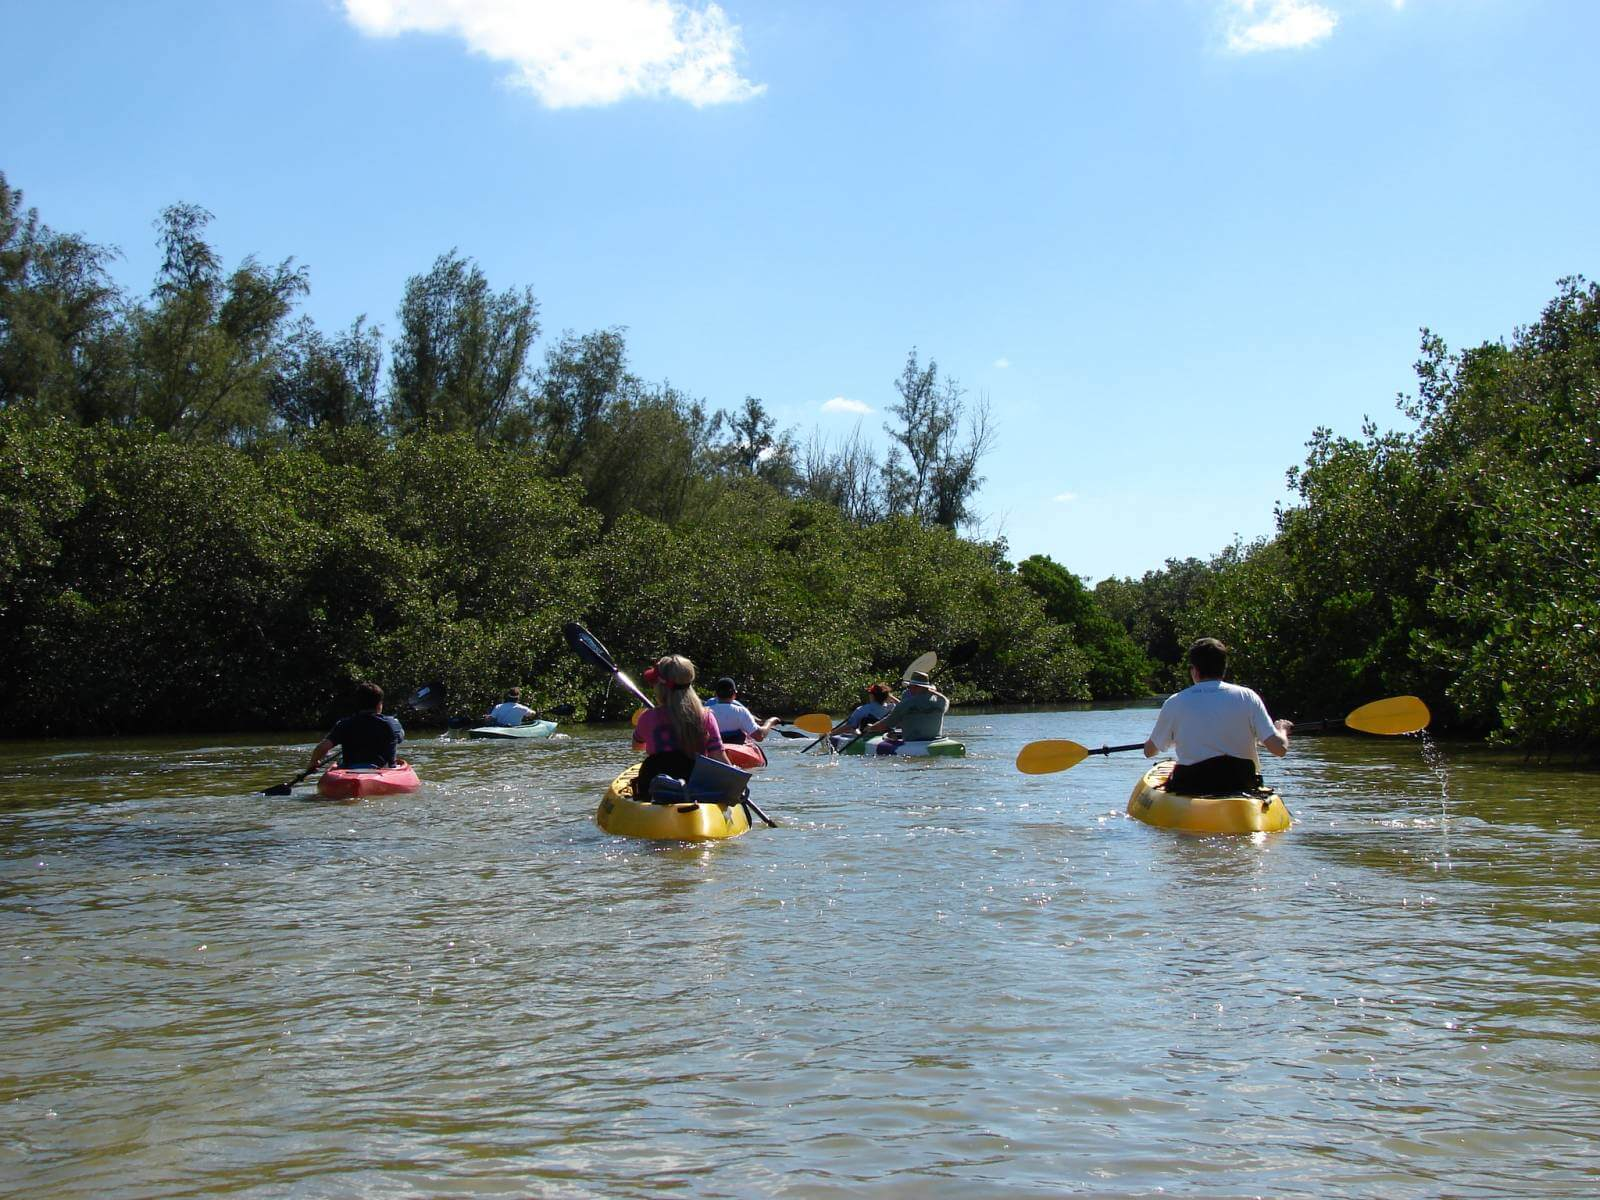 Rent a kayak or paddle through mangroves & Little Sarasota Bay before stopping at a secluded Gulf of Mexico Beach on a guided kayak tour in Siesta Key, Florida with Ride and Paddle.